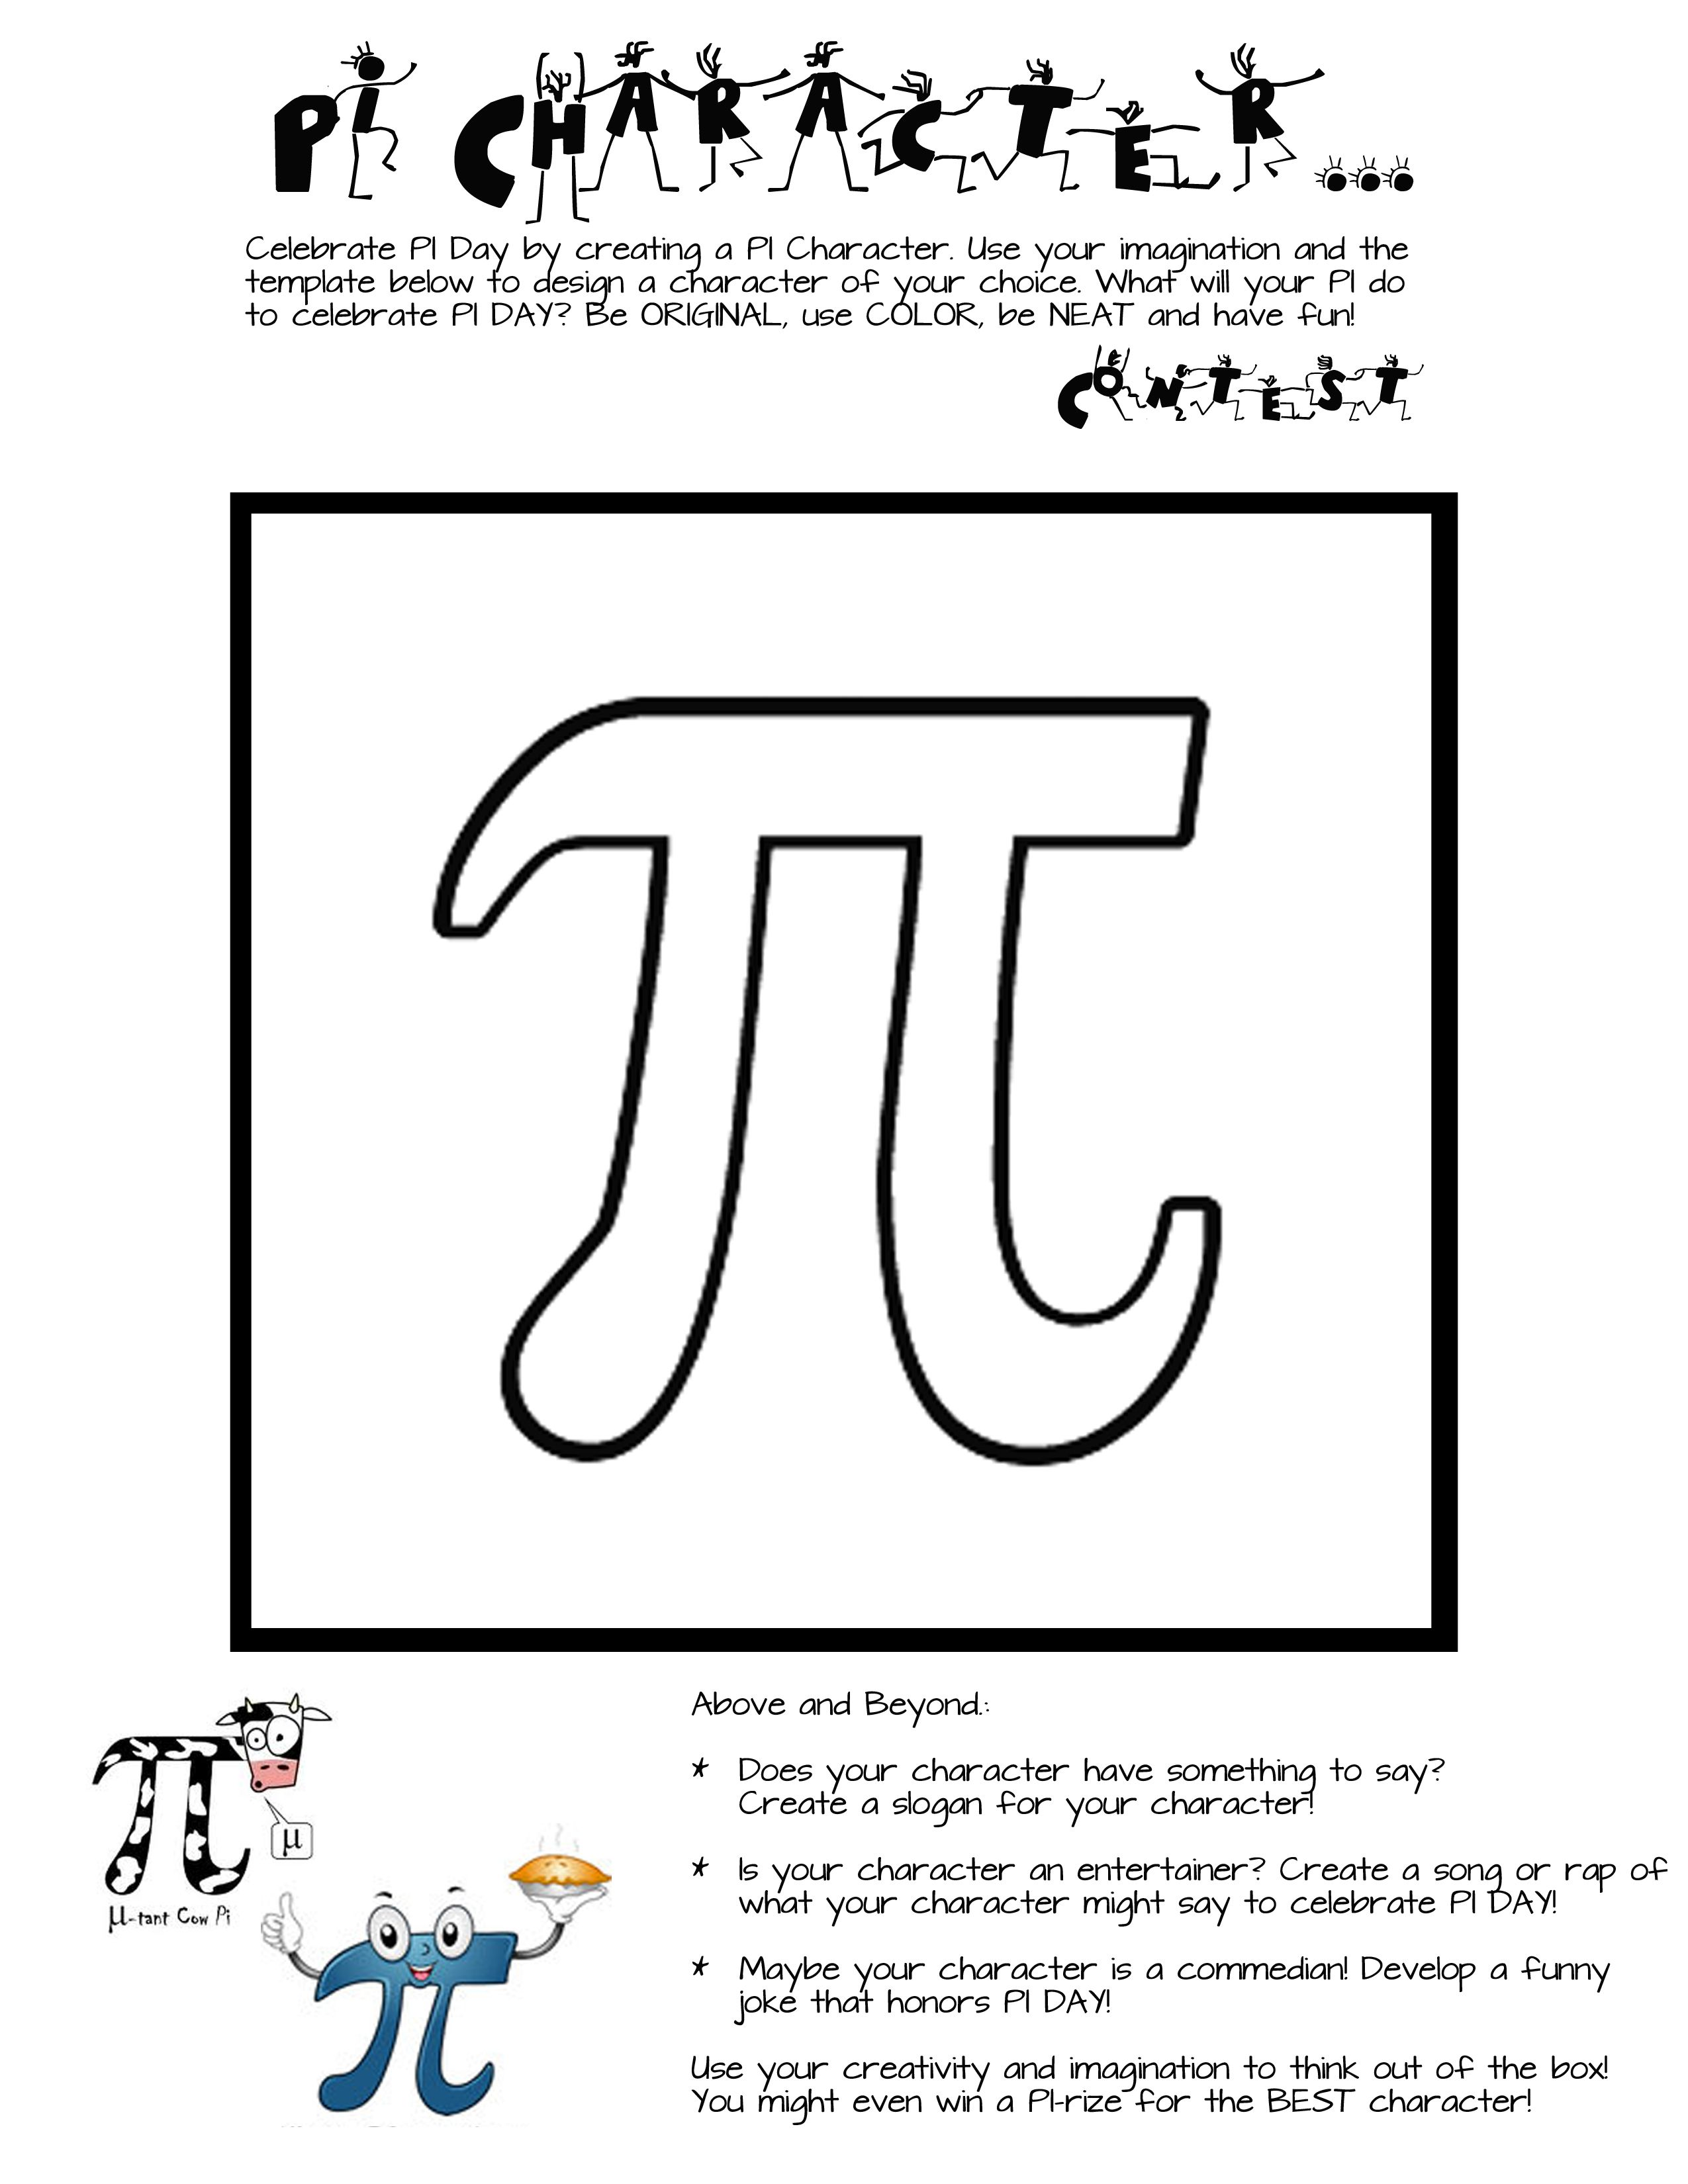 This Is The Pi Day Activity That I Created For My Middle School Students That Goes Beyond The